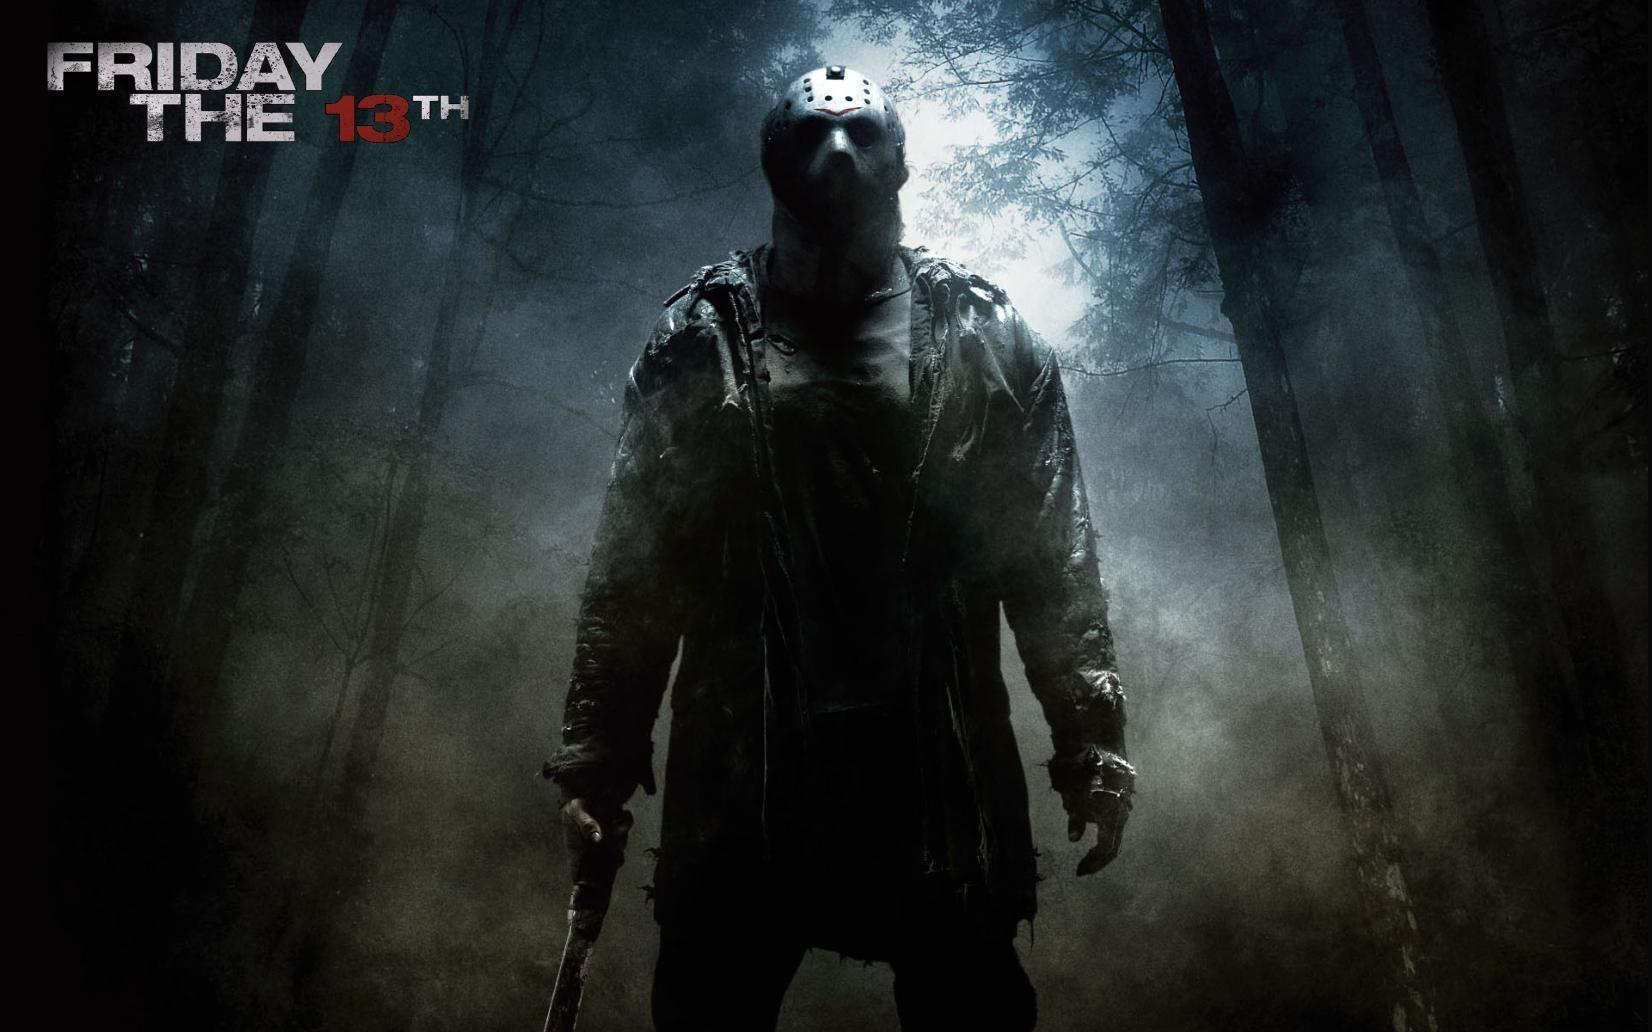 Watch more like Jason Voorhees Friday The 13